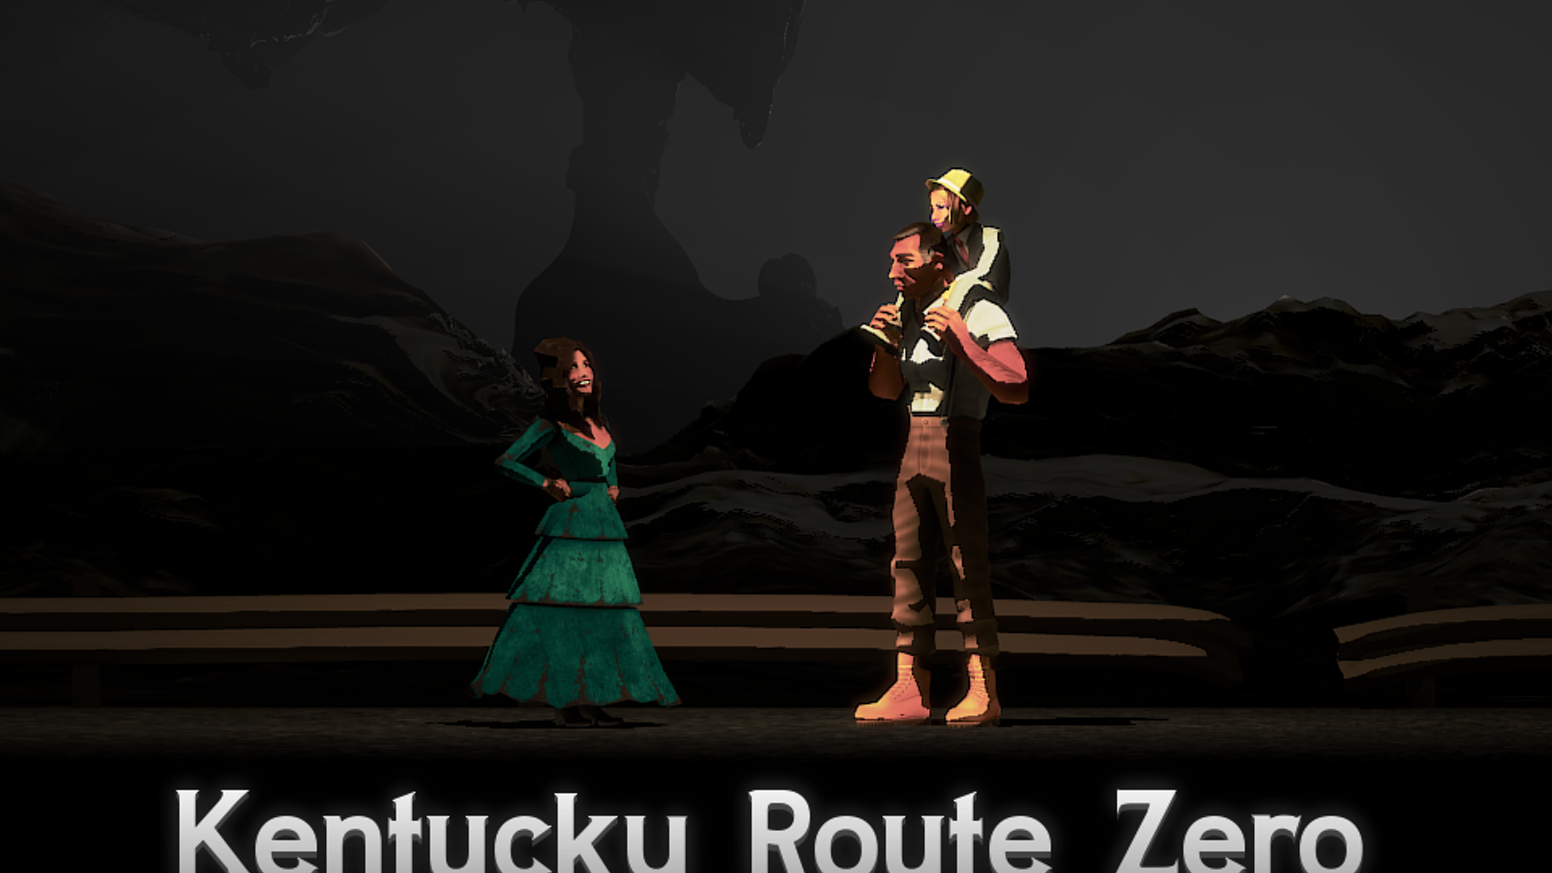 """Kentucky Route Zero"" is a magic realist adventure game about a secret highway in Kentucky and the mysterious folks who travel it."